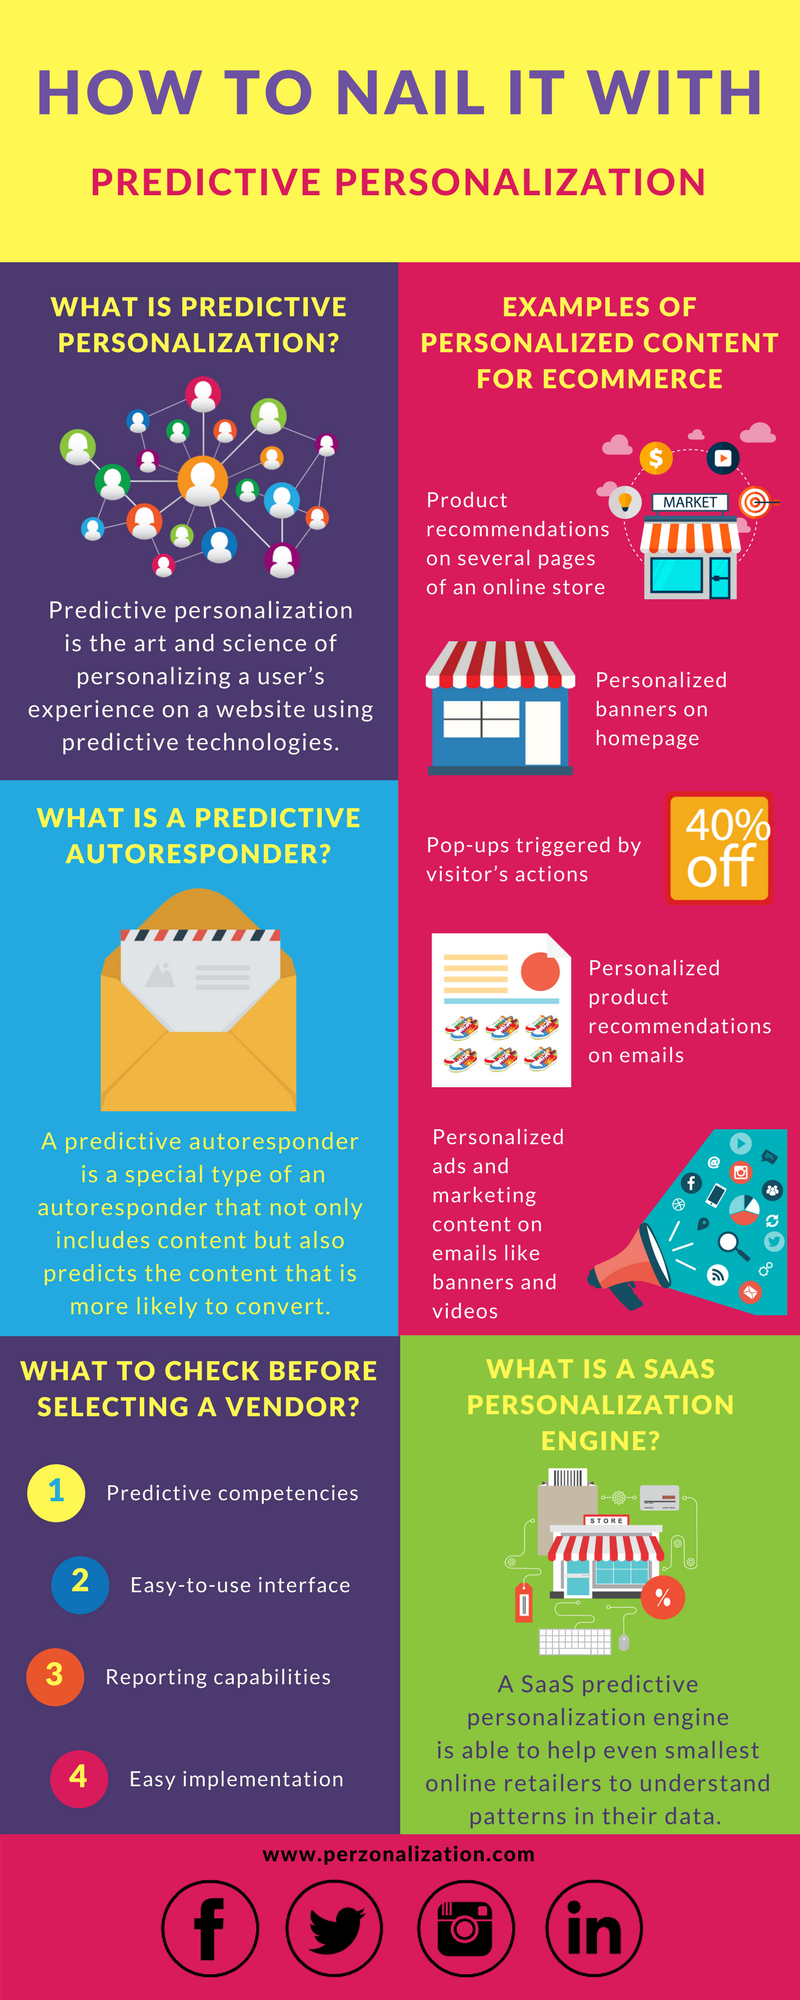 Predictive Personalization is the art and science of personalizing a user's experience on a website using predictive technologies. Find out more in this free infographic.